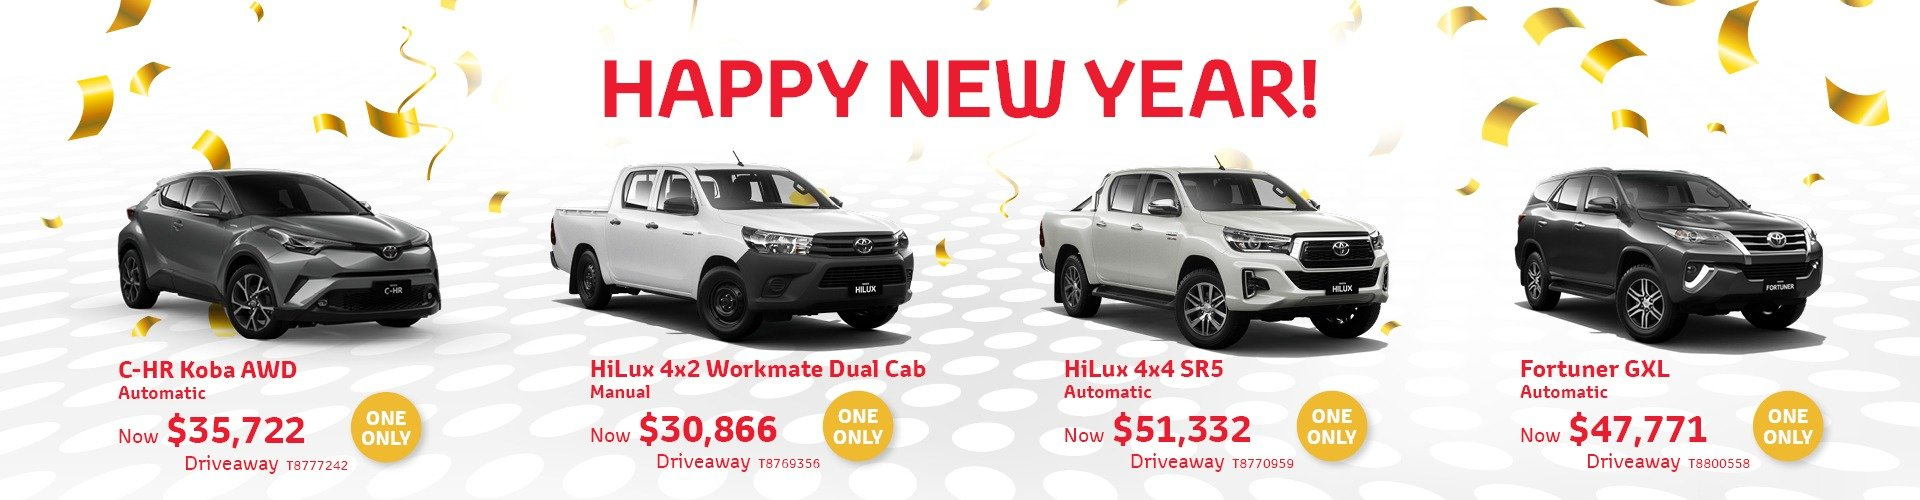 Cardiff Toyota New Year Deals